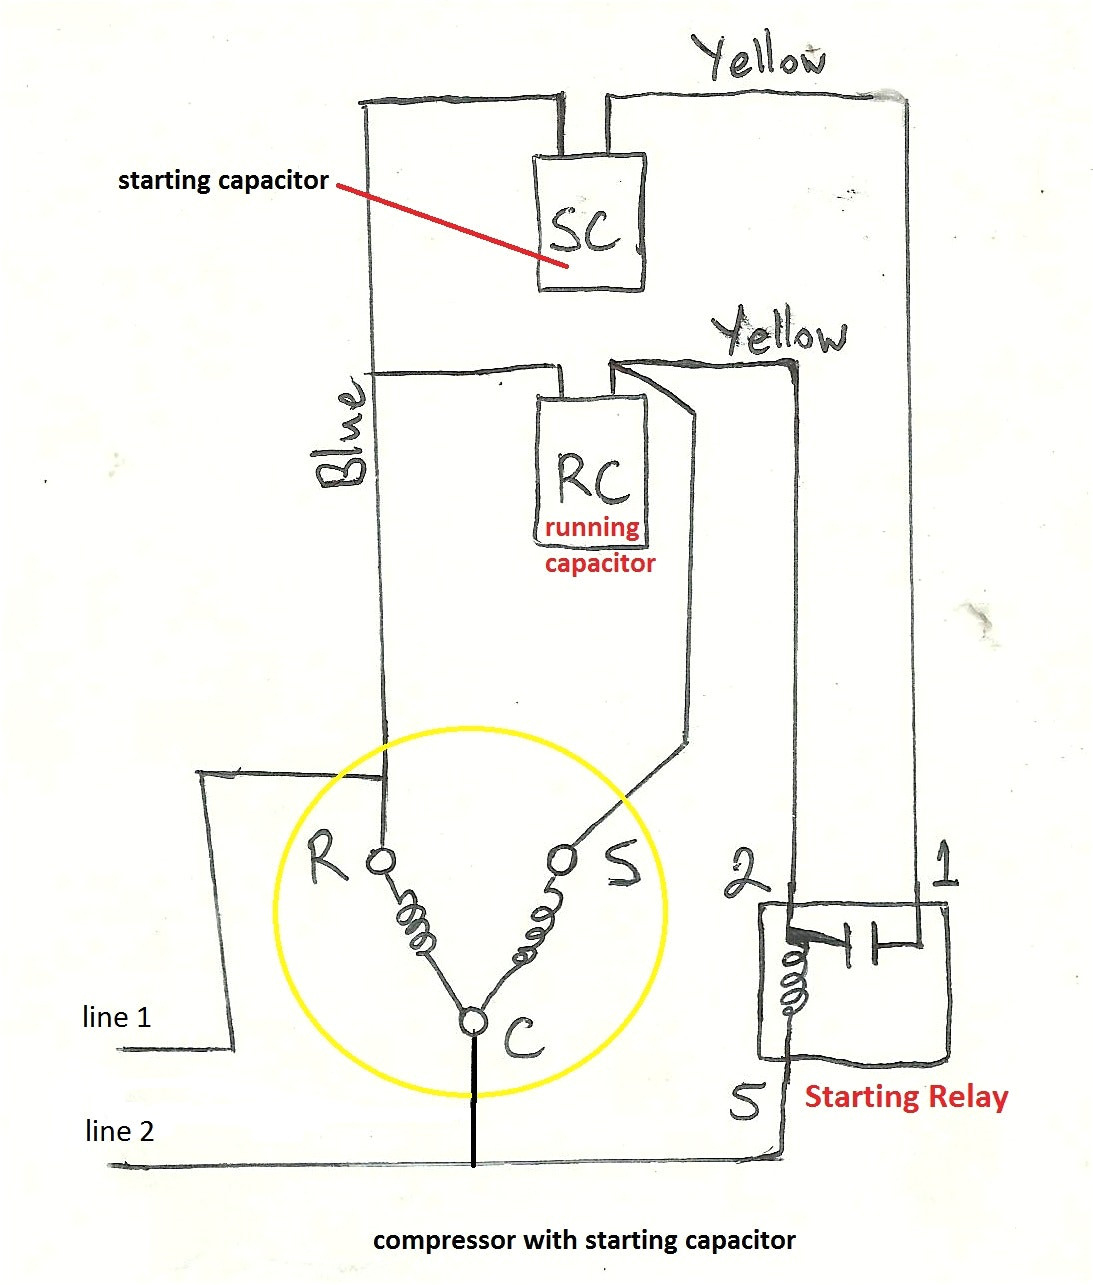 Ceiling Fan Internal Wiring Schematic | Best Wiring Library - Ceiling Fan Internal Wiring Diagram